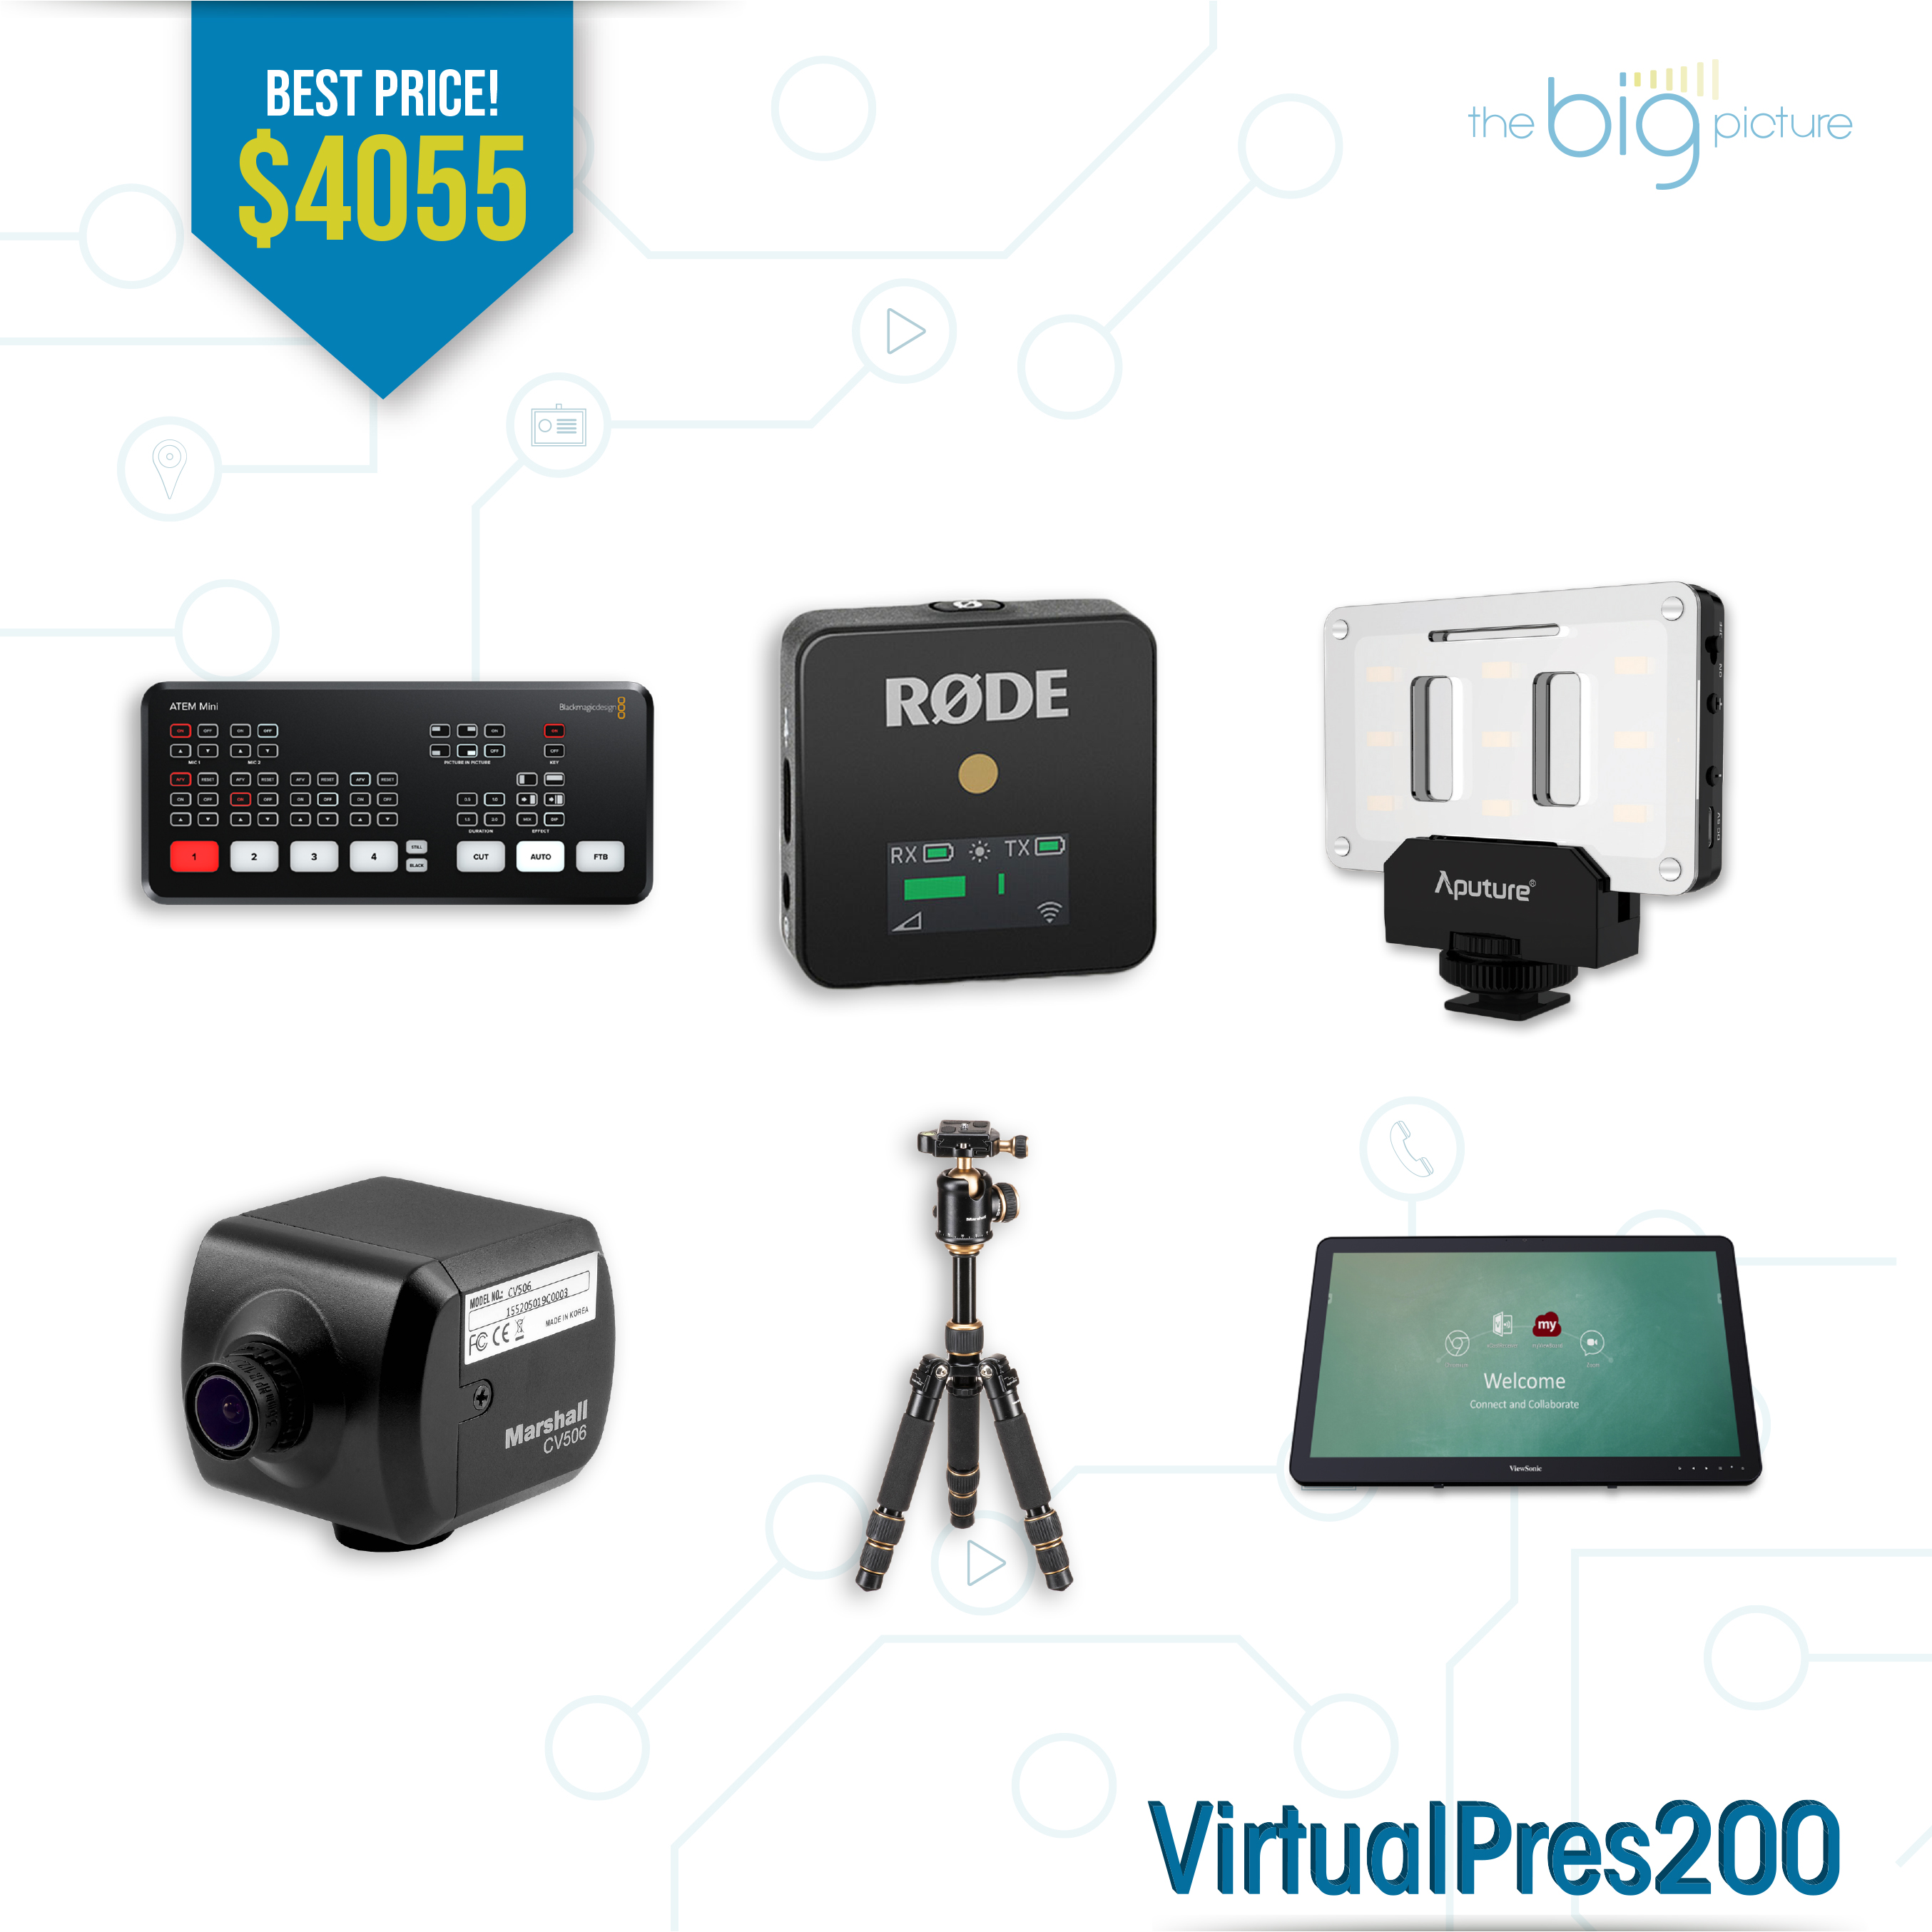 A set of products for VirtualPres200